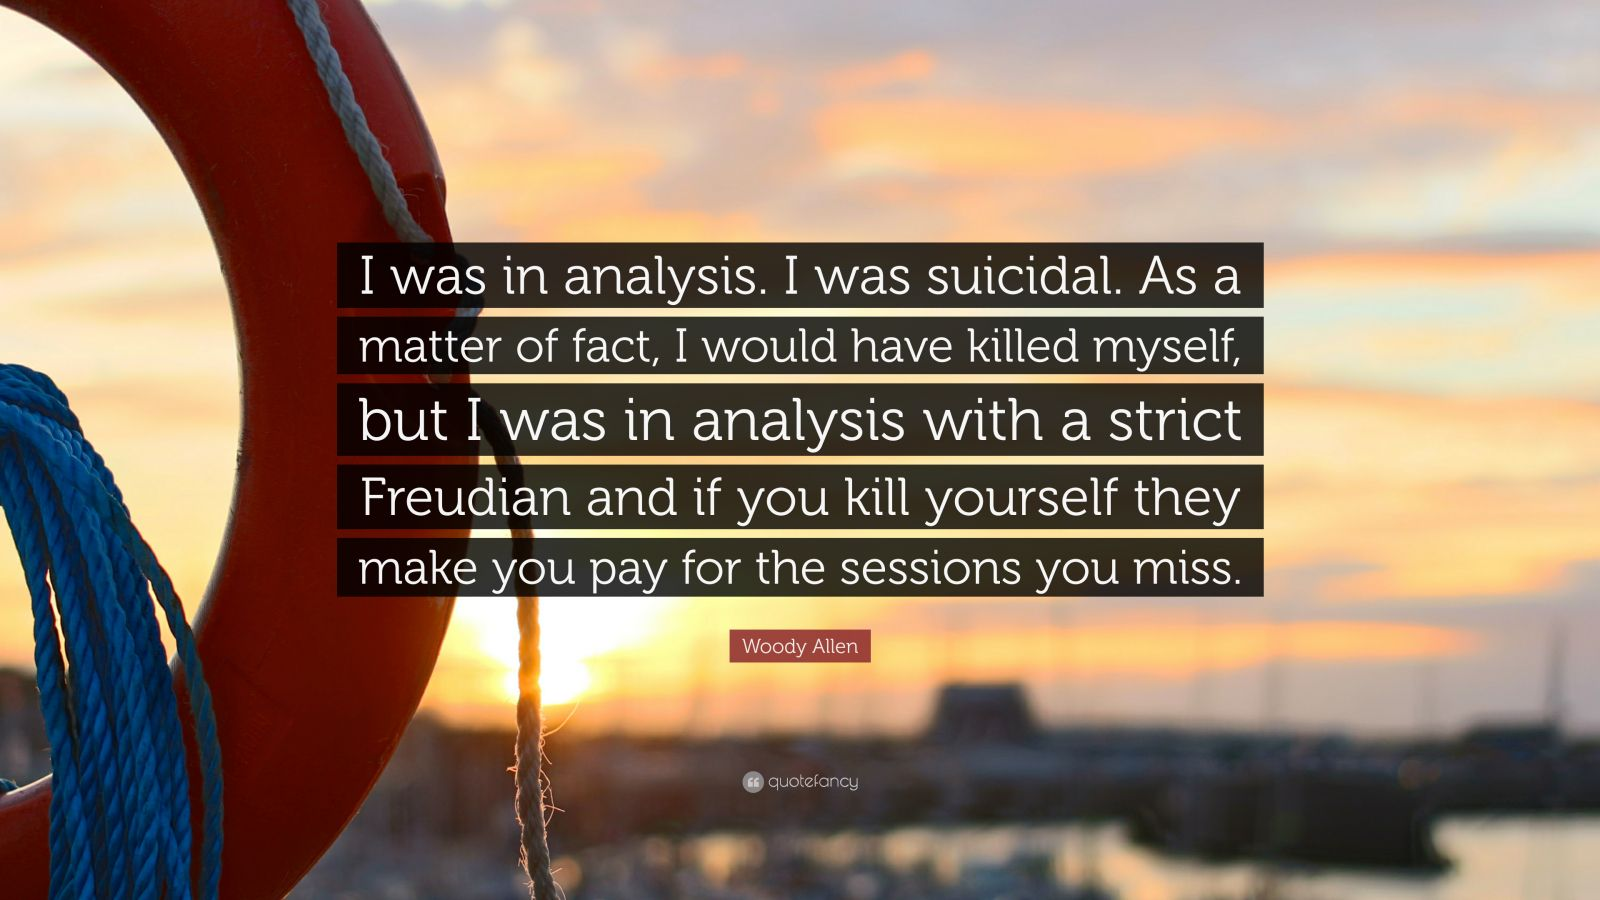 """Woody Allen Quote: """"I was in analysis. I was suicidal. As a matter of fact, I would have killed myself, but I was in analysis with a strict Freudian and if you kill yourself they make you pay for the sessions you miss."""""""